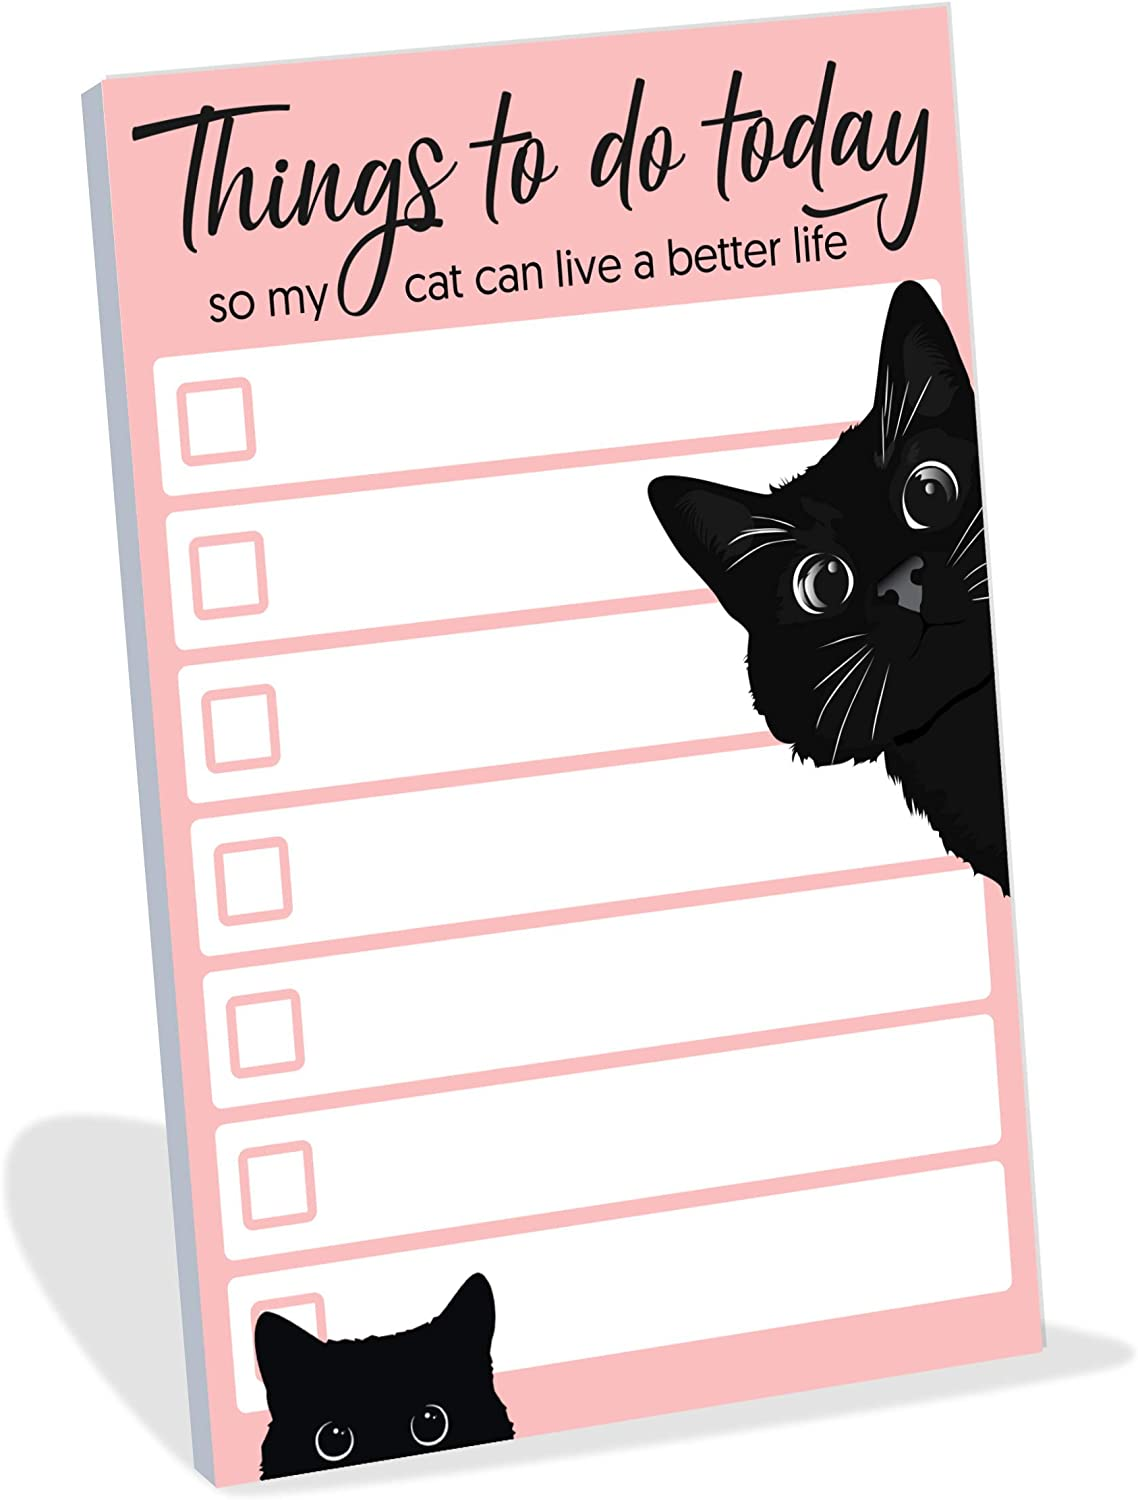 "Funny Cat Small to Do List Sticky Notes | Things to Do Today So My Cat Can Live a Better Life | Black Cat Humor Notebook Notepad Note Card for Cat Lover Gift| 50 Pages 4x6"" by Daily Ritmo"